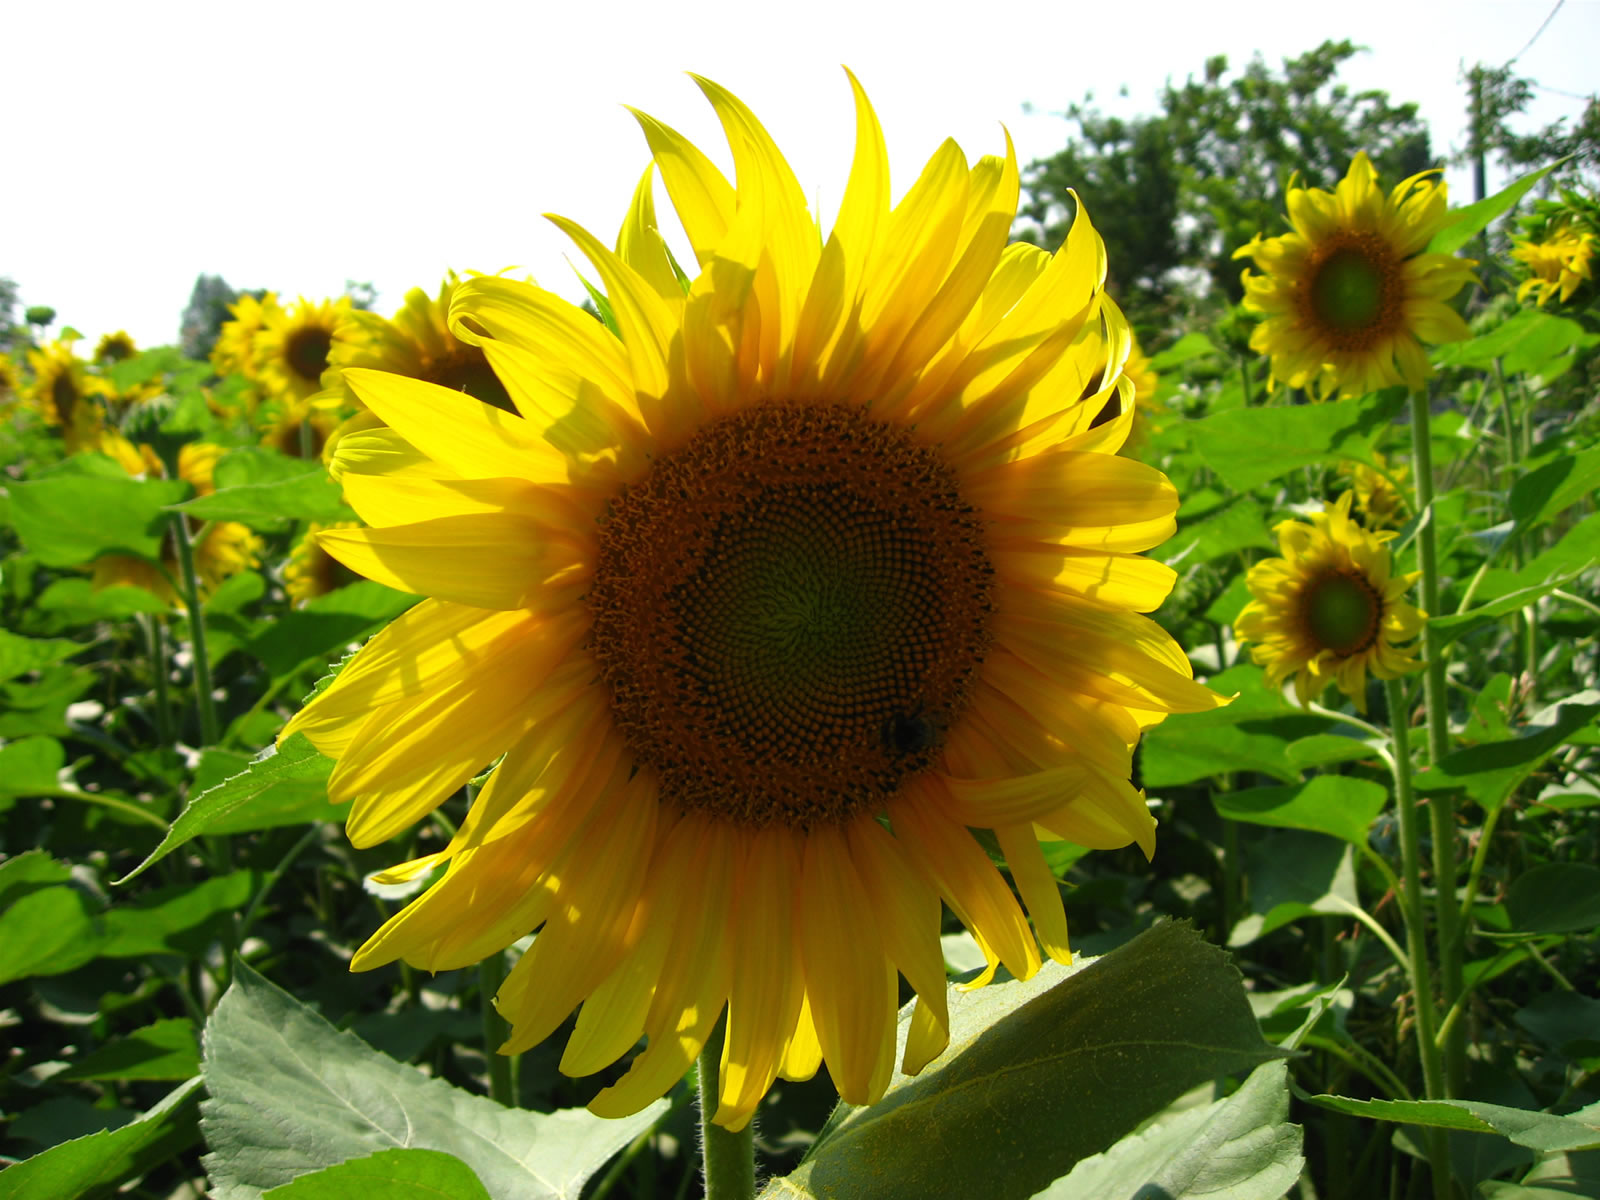 sunflower photo free high resolution pictures wallpaper free